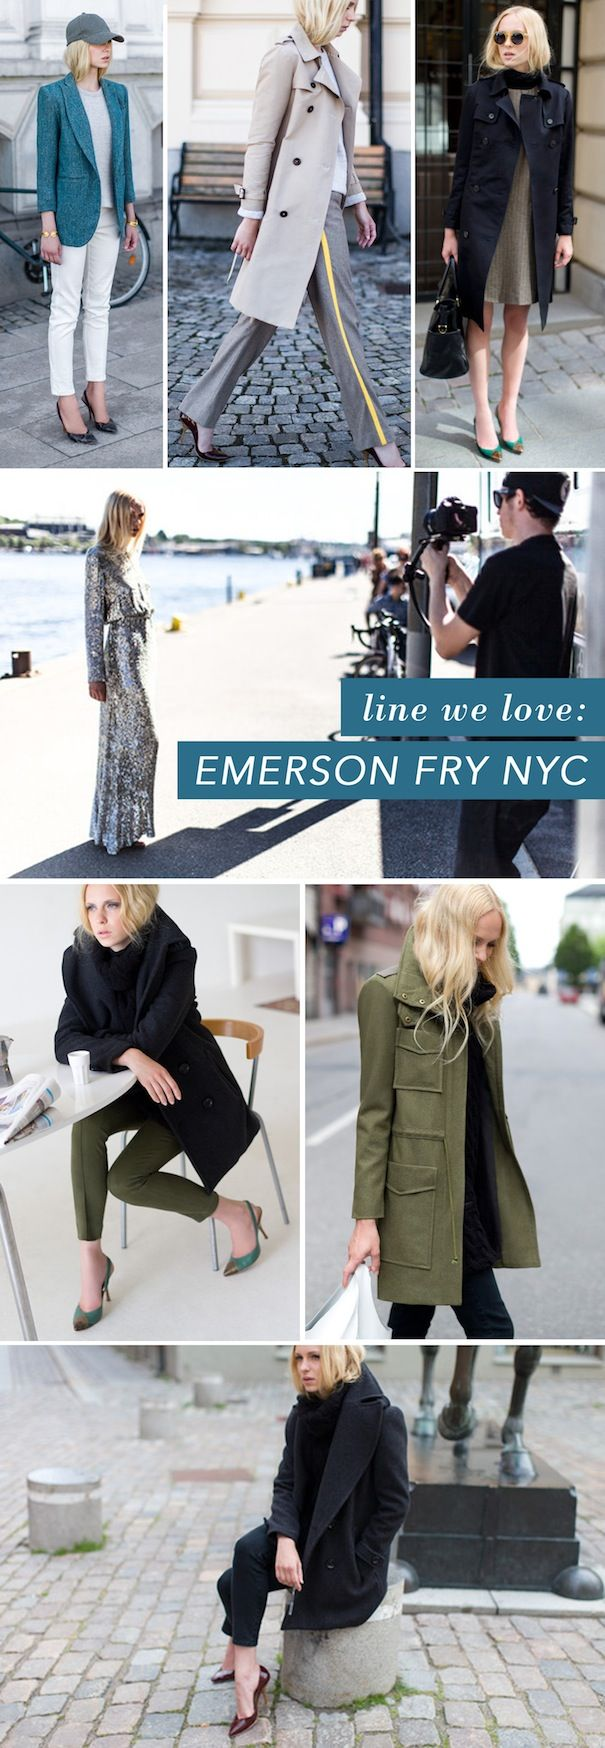 Line We Love: Emerson Fry